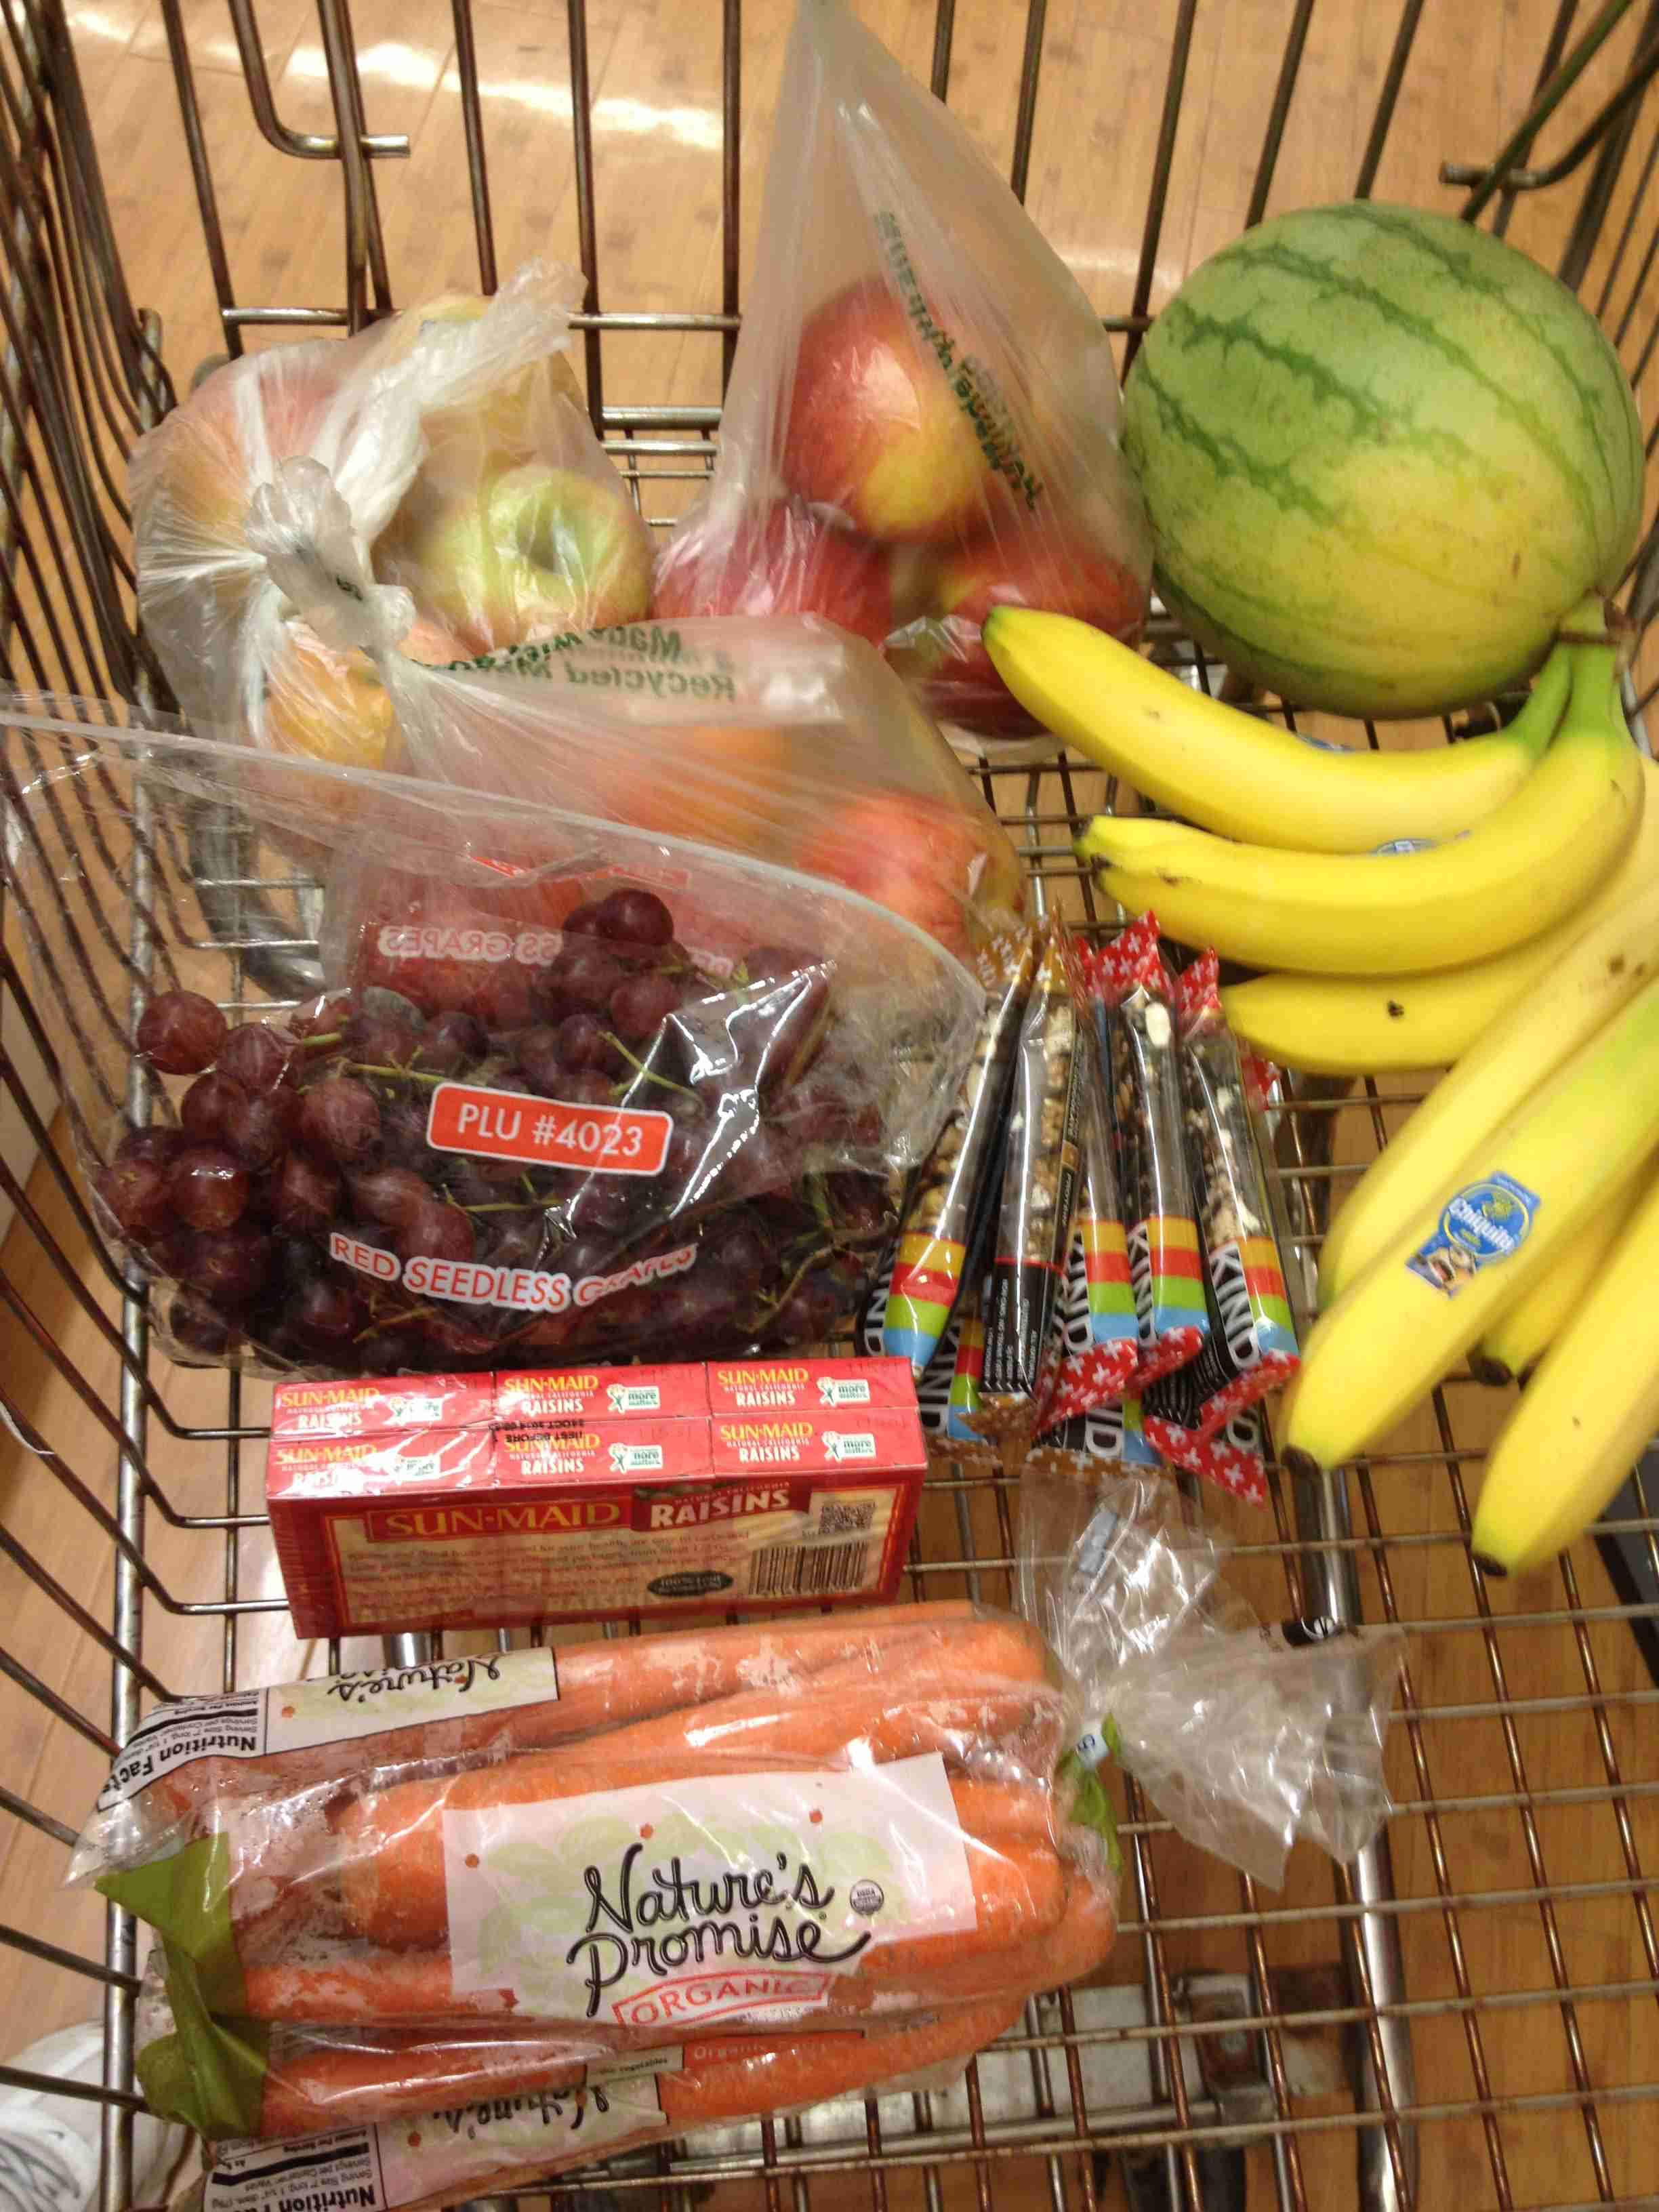 Healthy shopping doesn't have to be expensive!